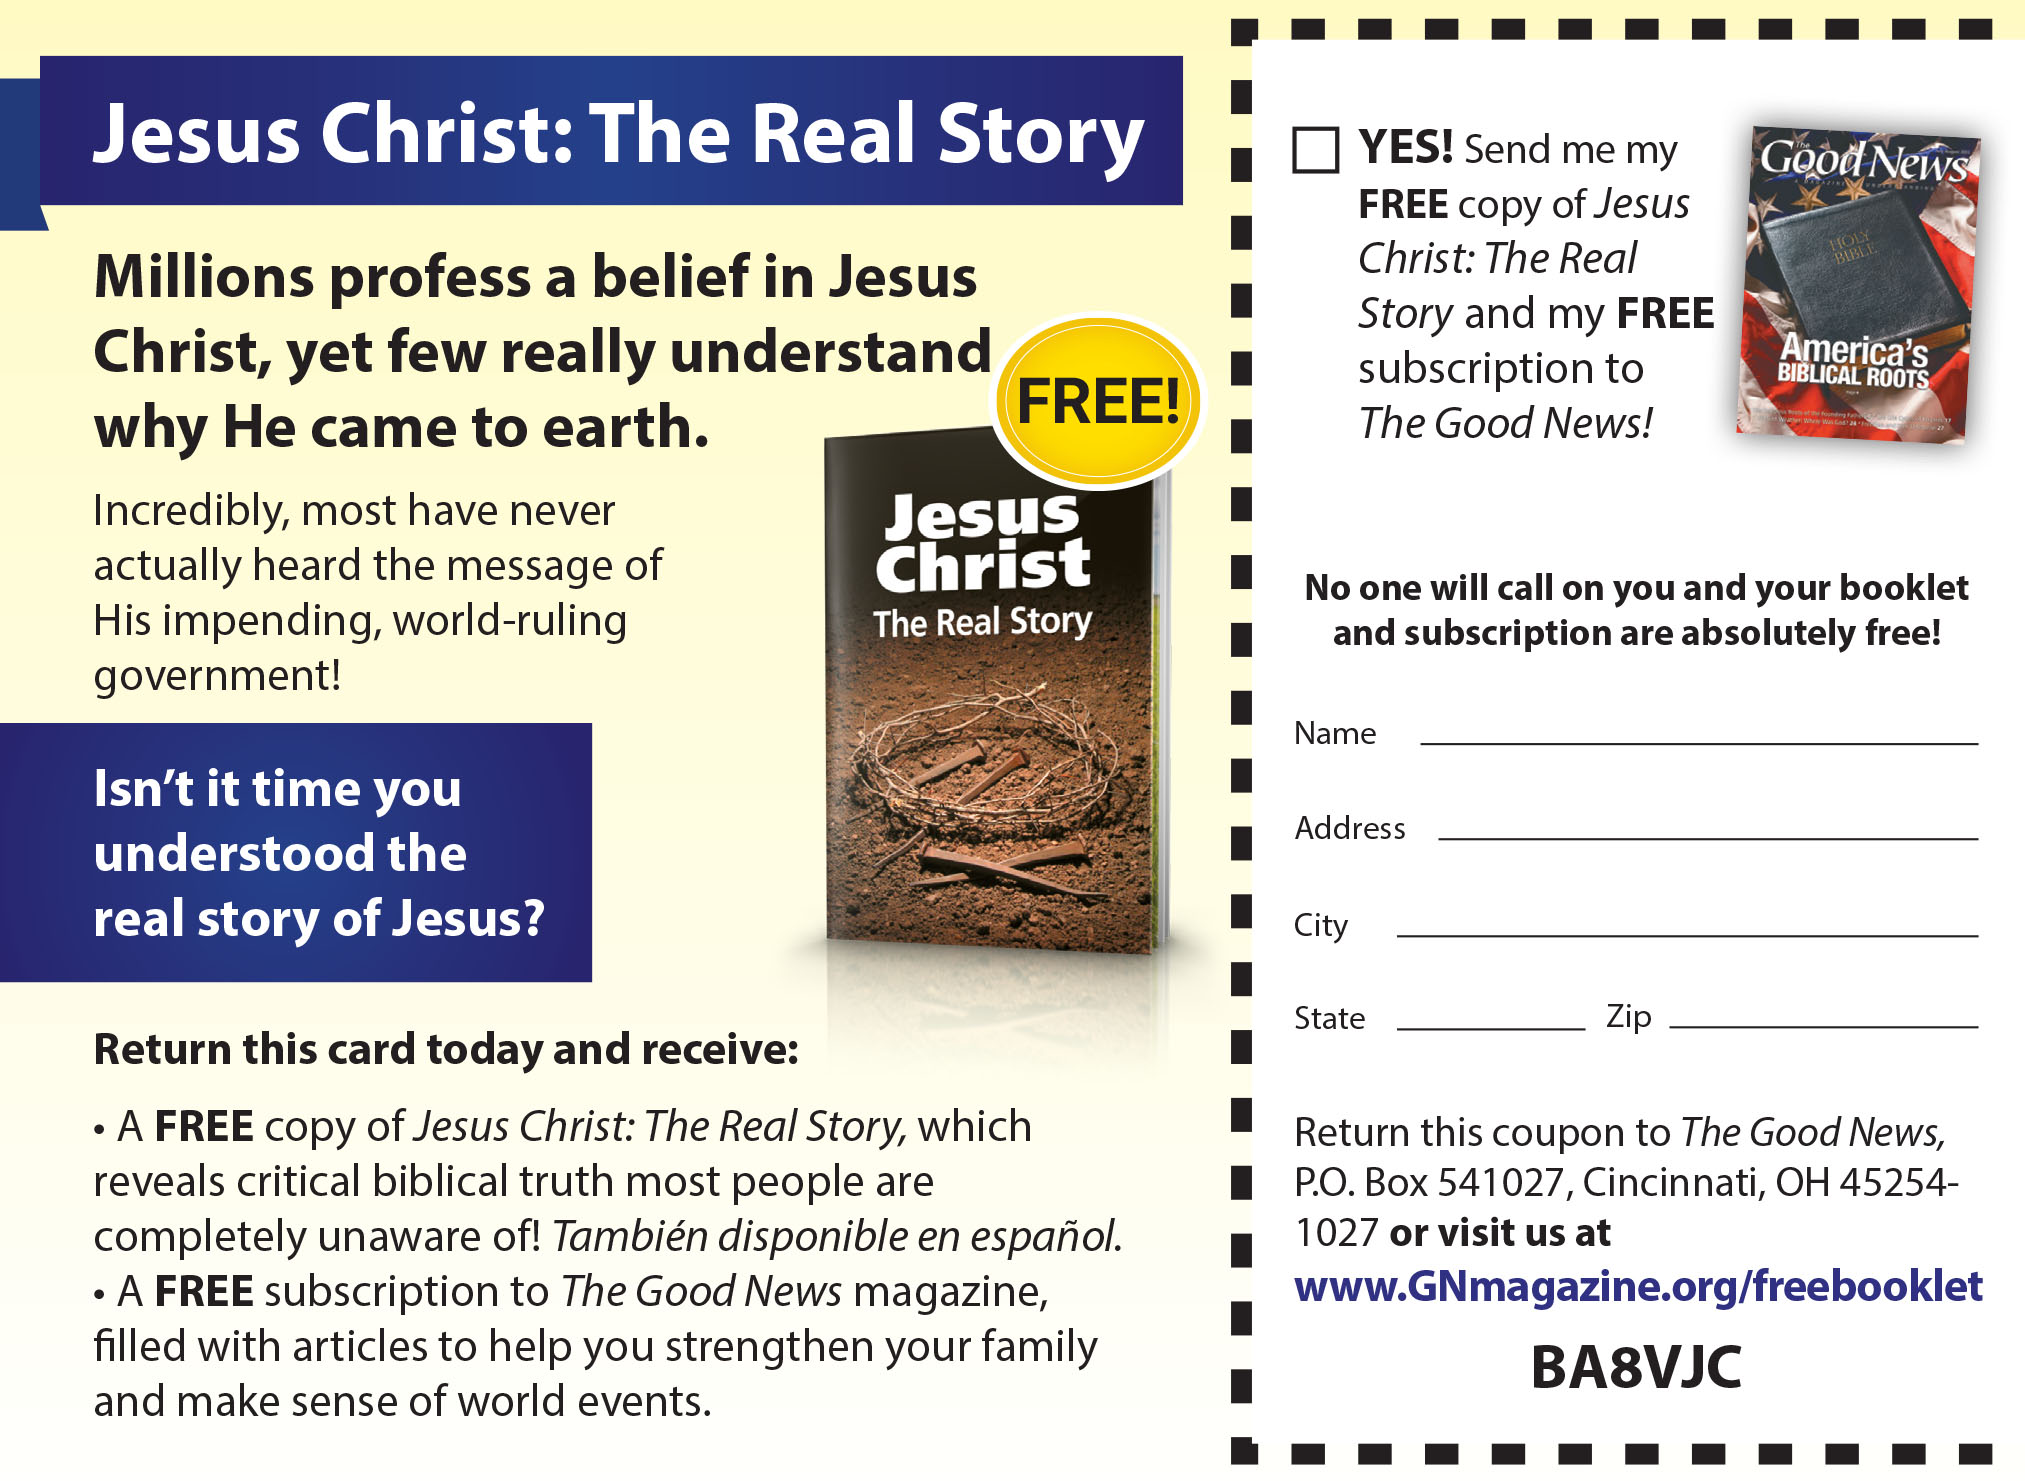 true story of jesus's life The life of jesus contains the story of the miracles of jesus, the call of jesus and jesus resurrection and so on let's strengthen our faith in jesus christ through reading the life story of jesus.